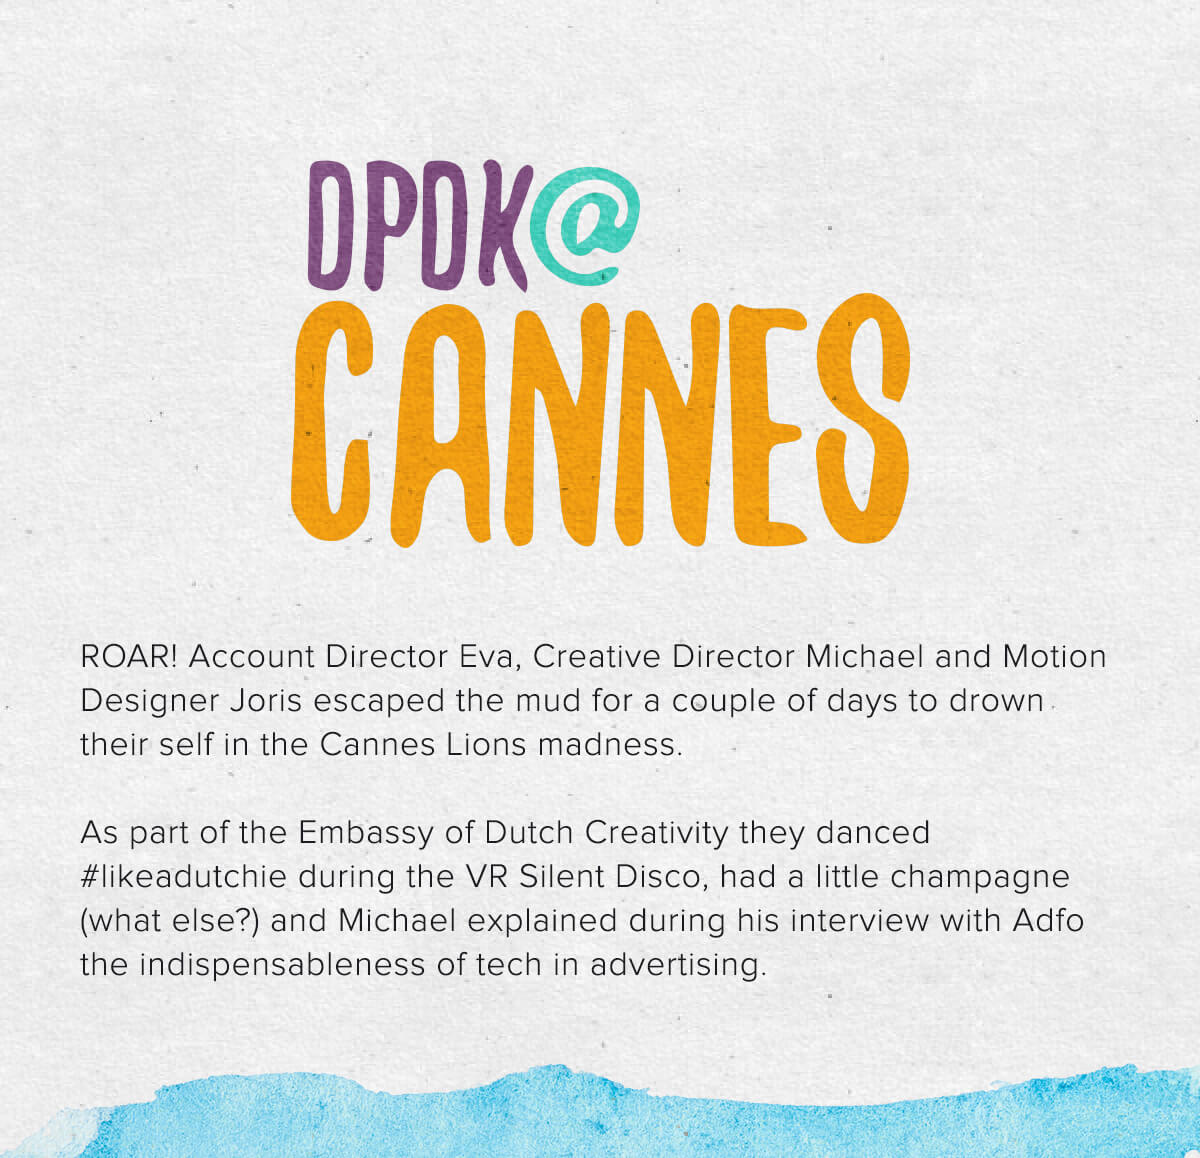 DPDK at Cannes